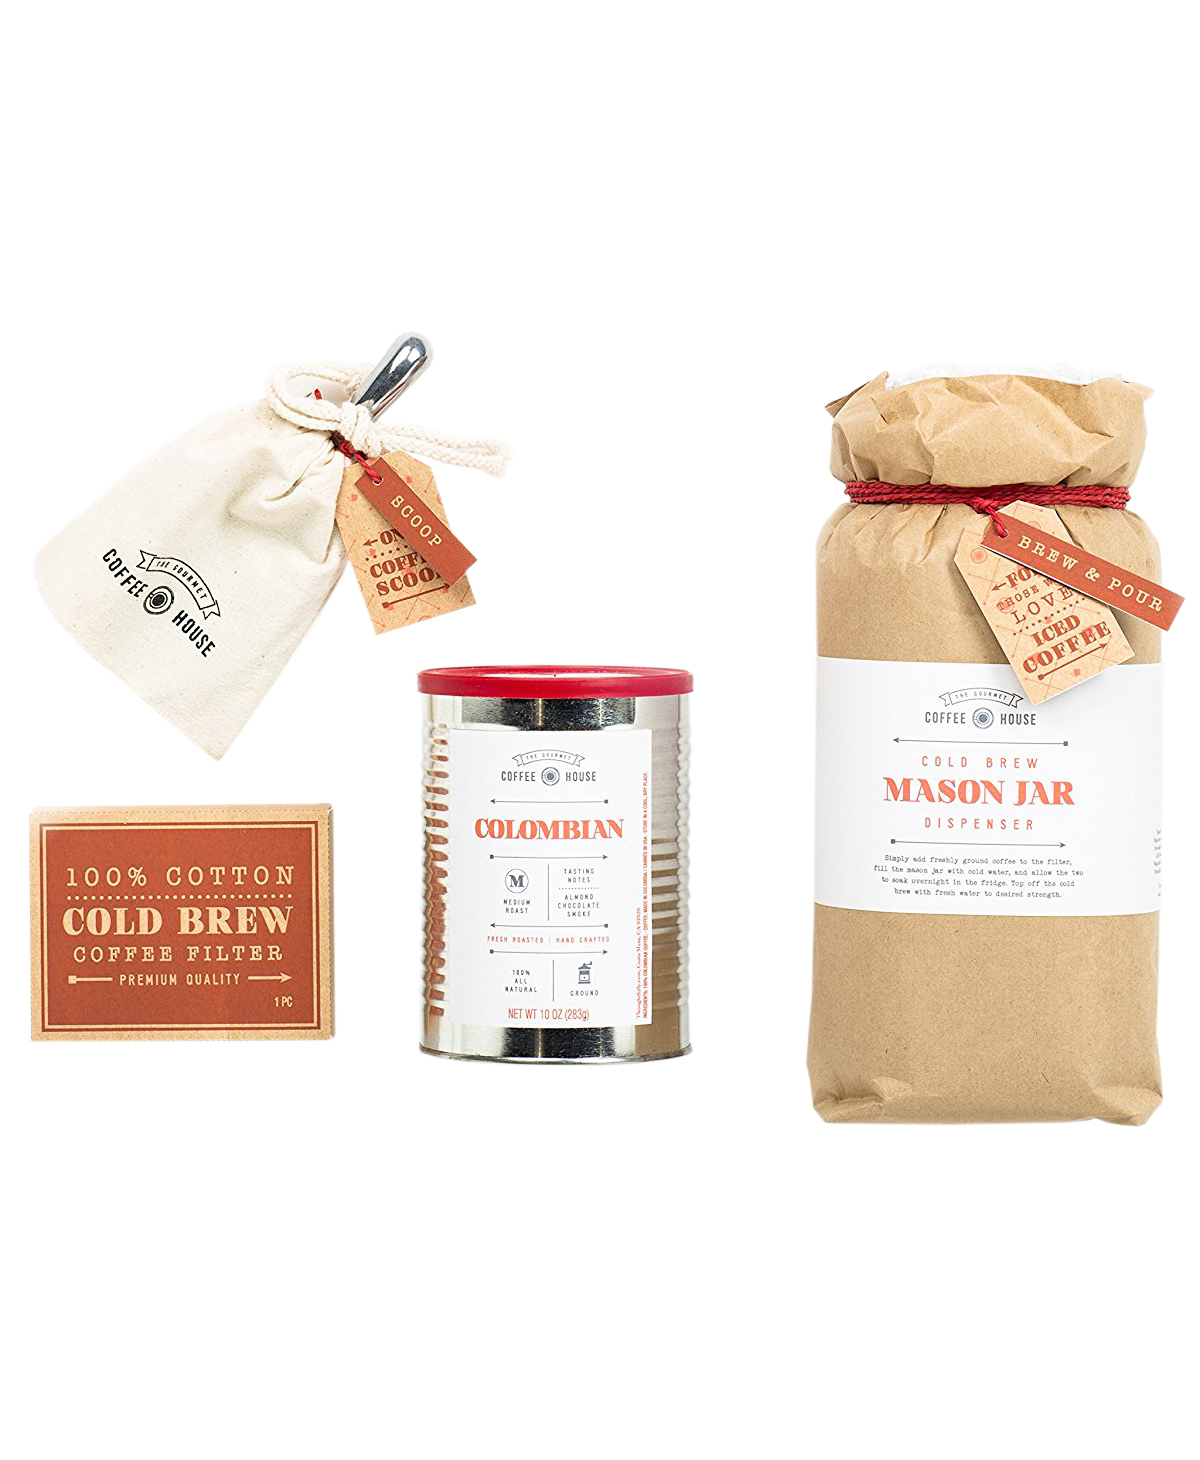 Thoughtfully Science of Cold Brew Subscription Box